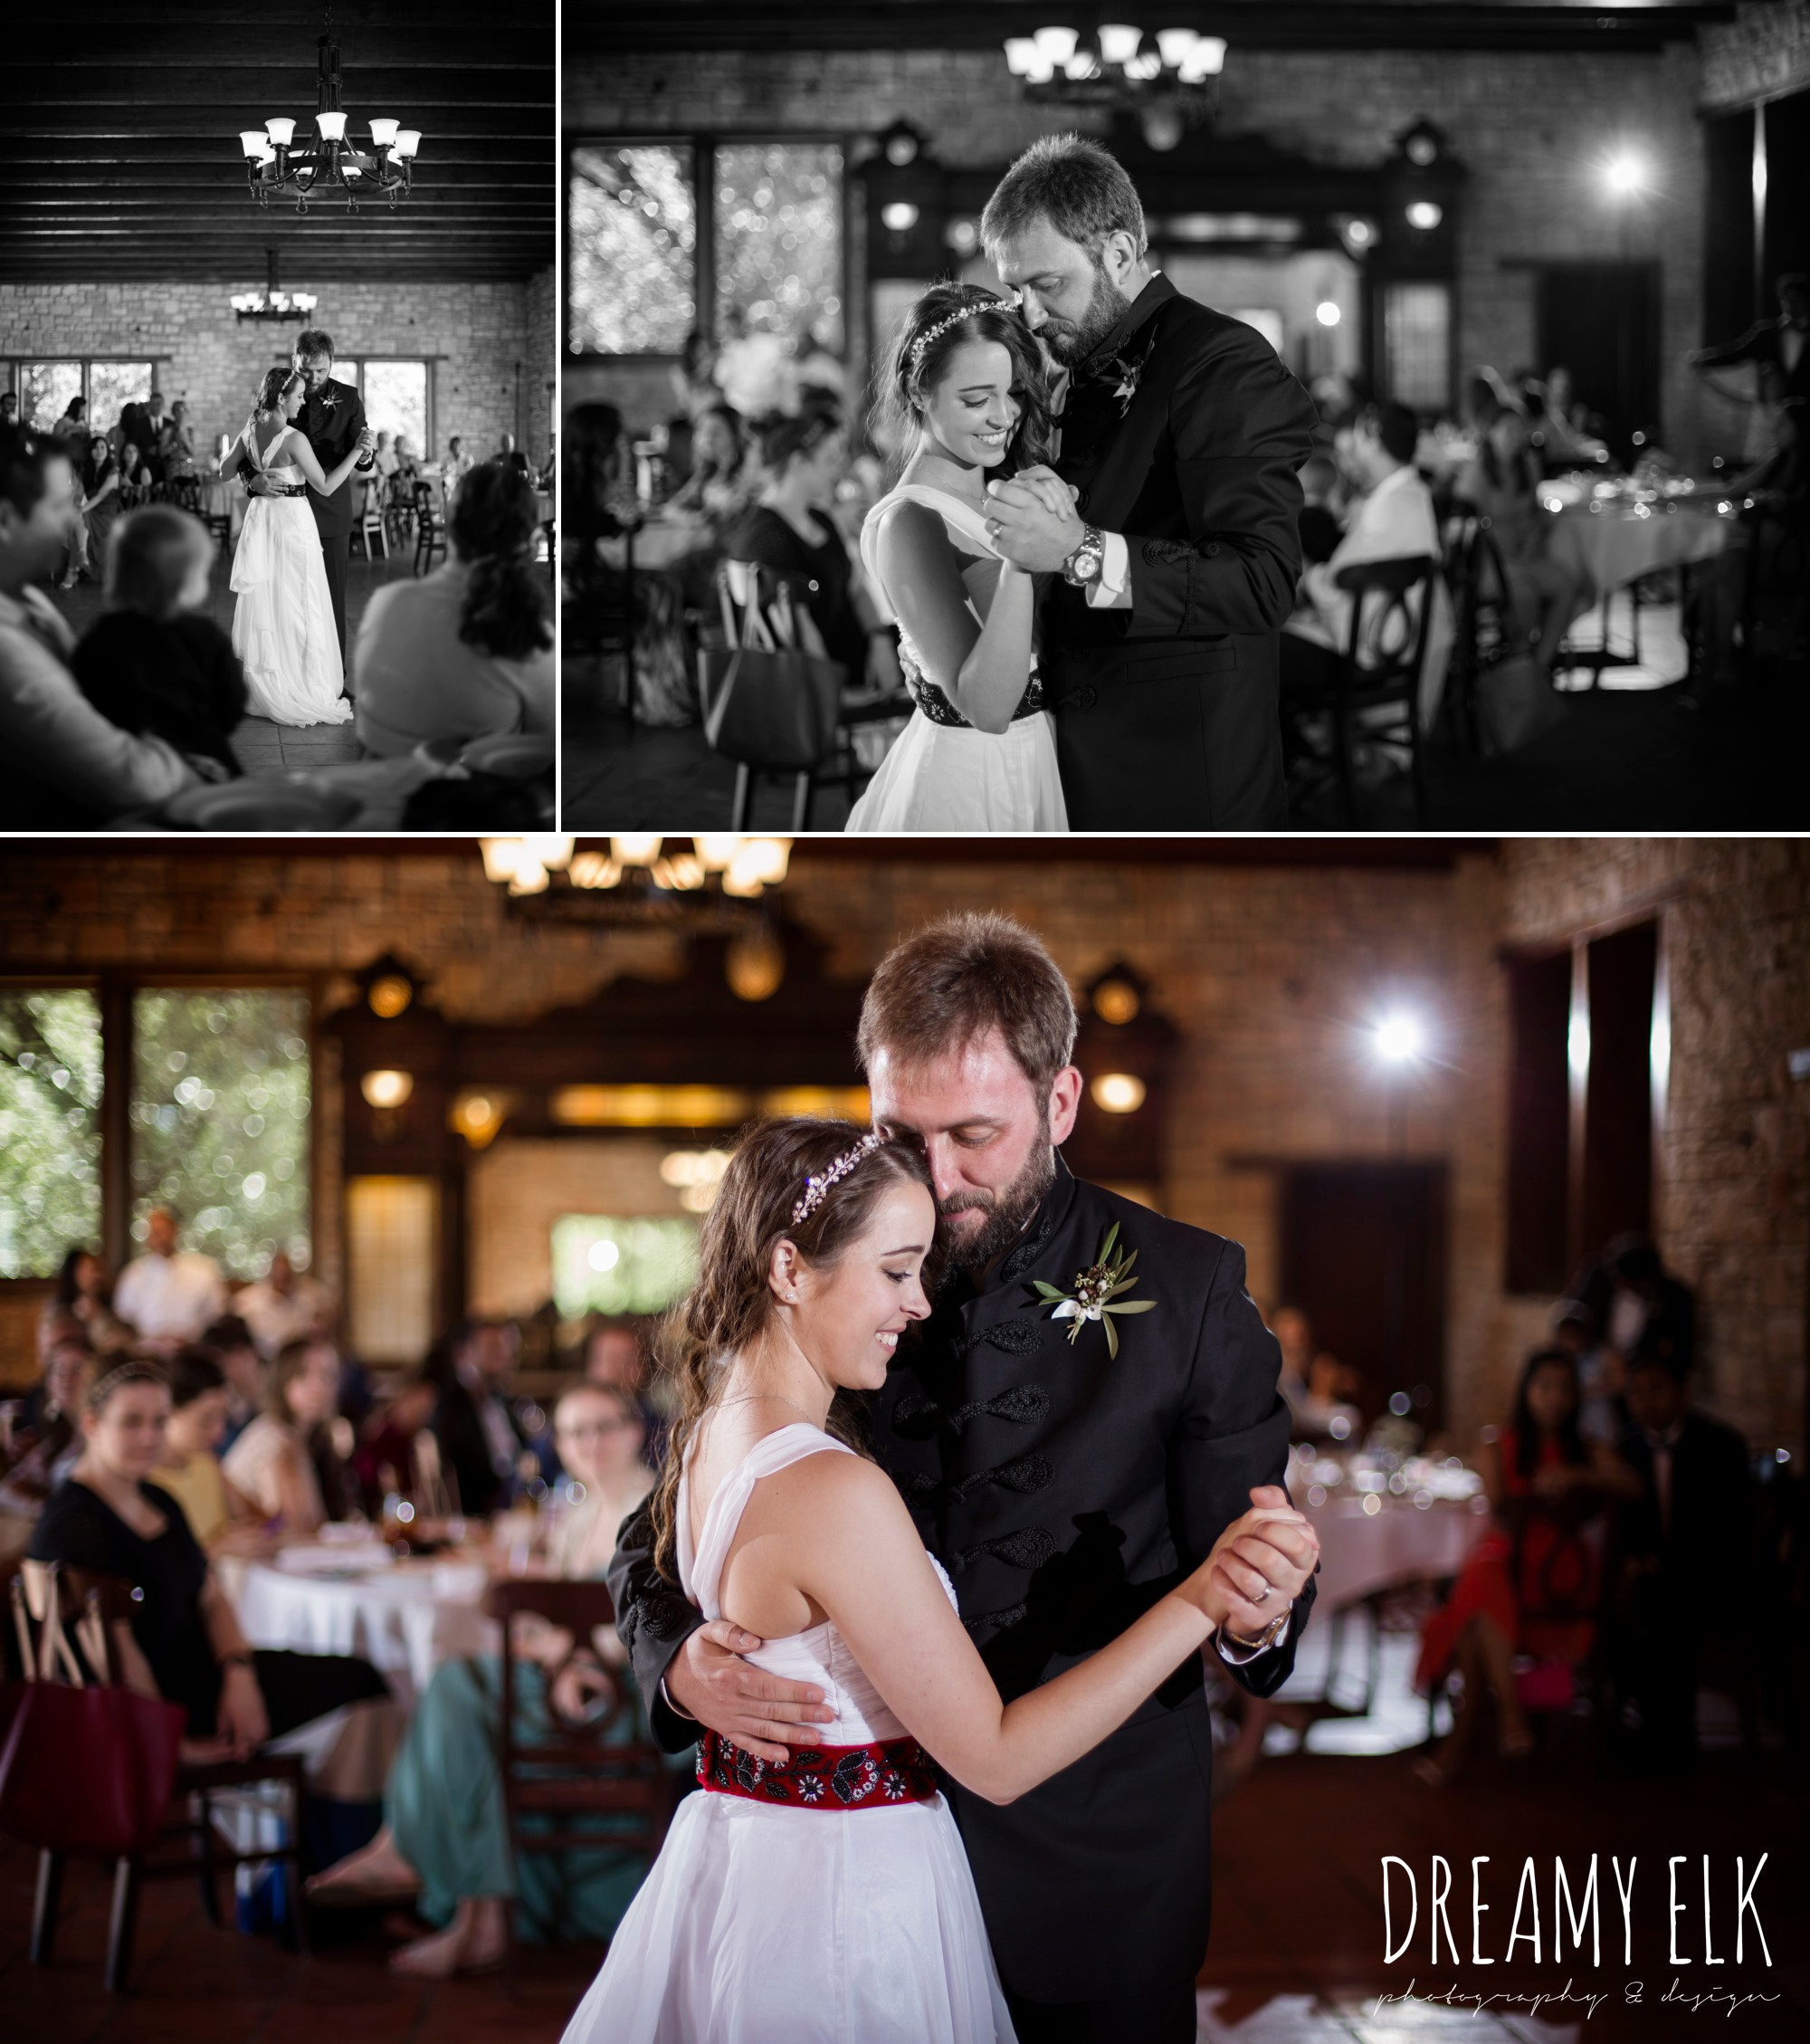 bride and groom first dance, outdoor spring april wedding photo, thurman's mansion, dripping springs, texas {dreamy elk photography and design}